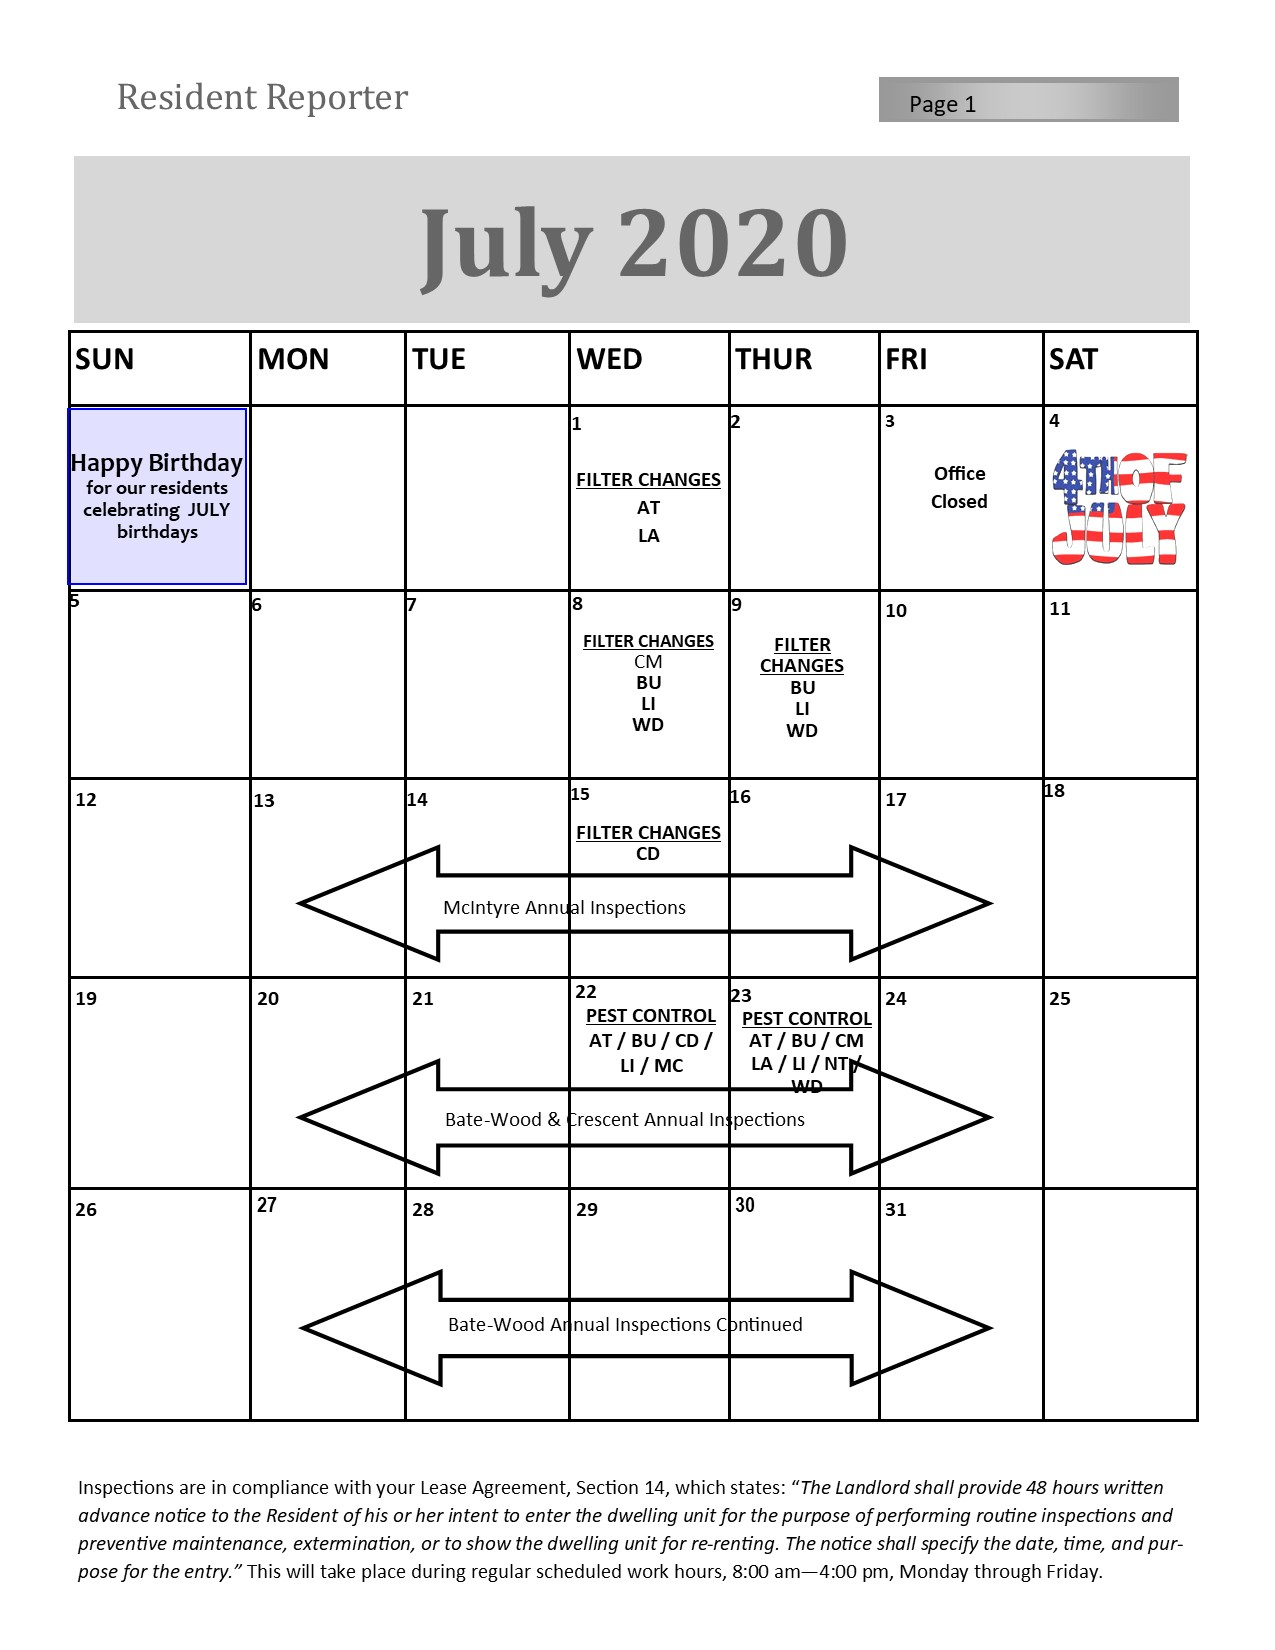 July Resident Services Calendar